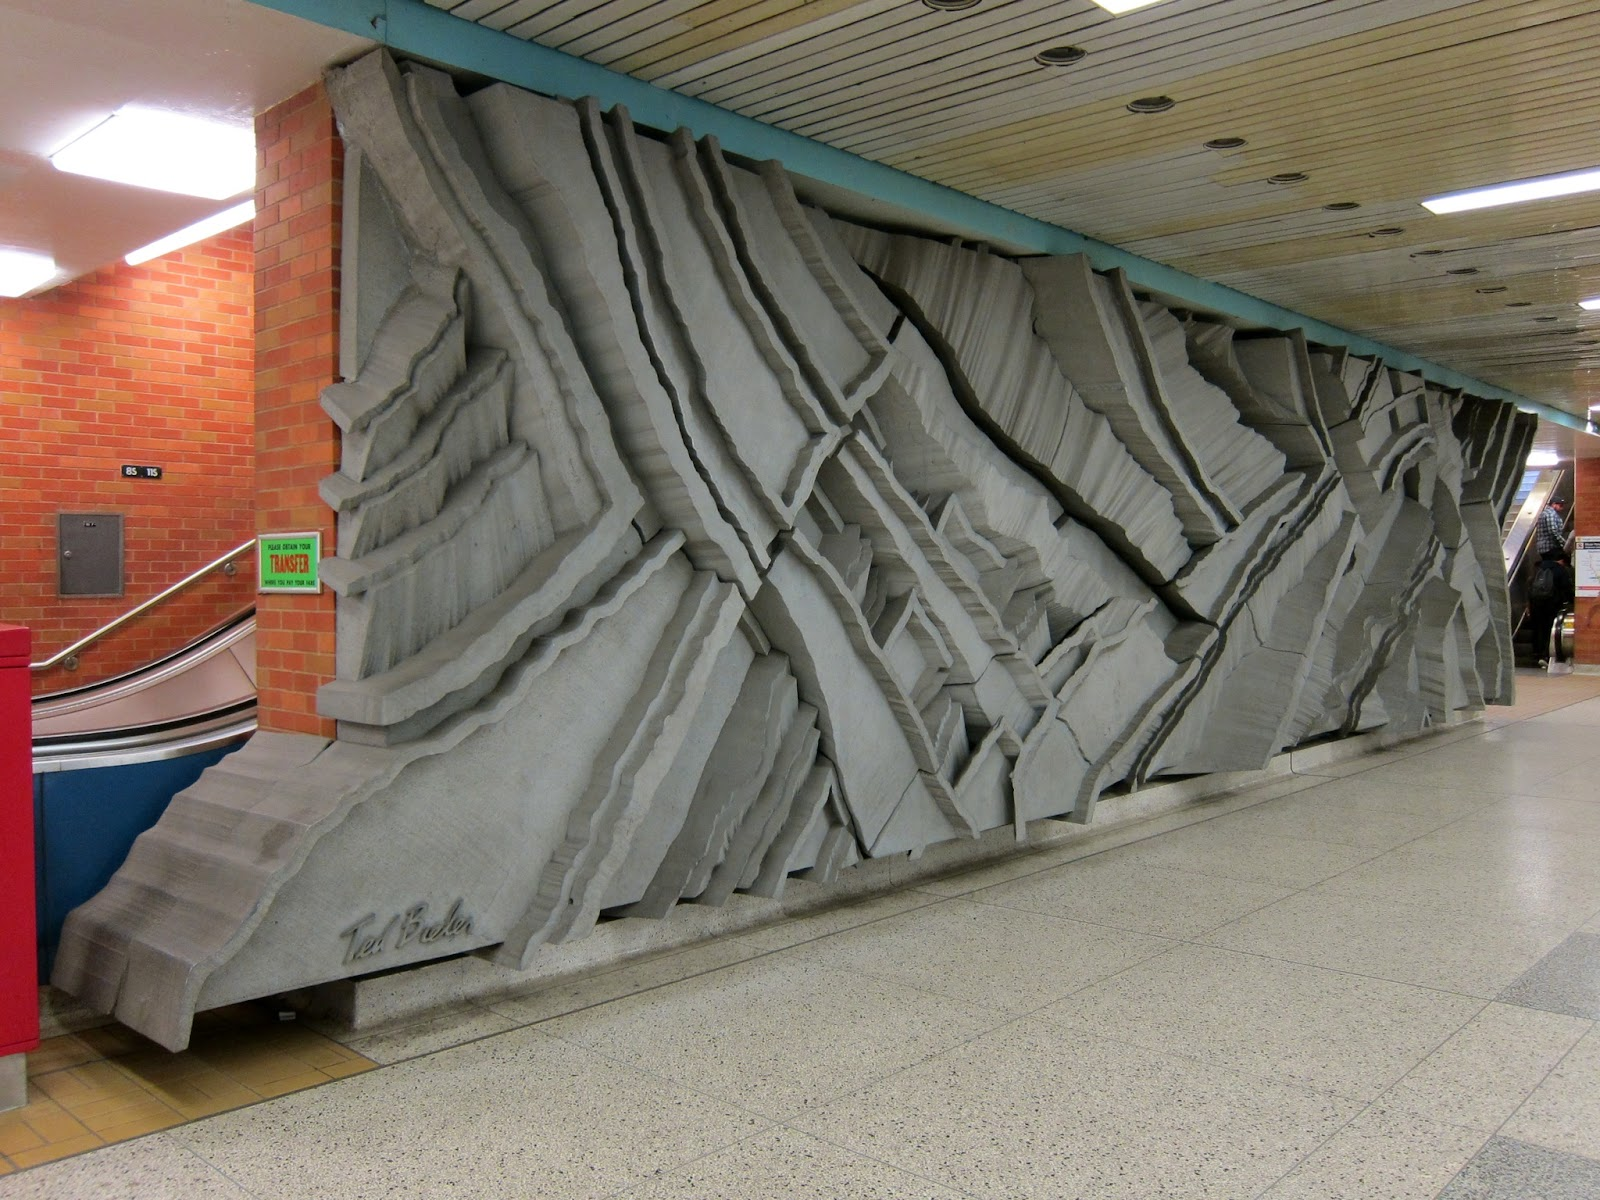 Ted Bieler's wall sculpture Canyons in Wilson station's mezzanine